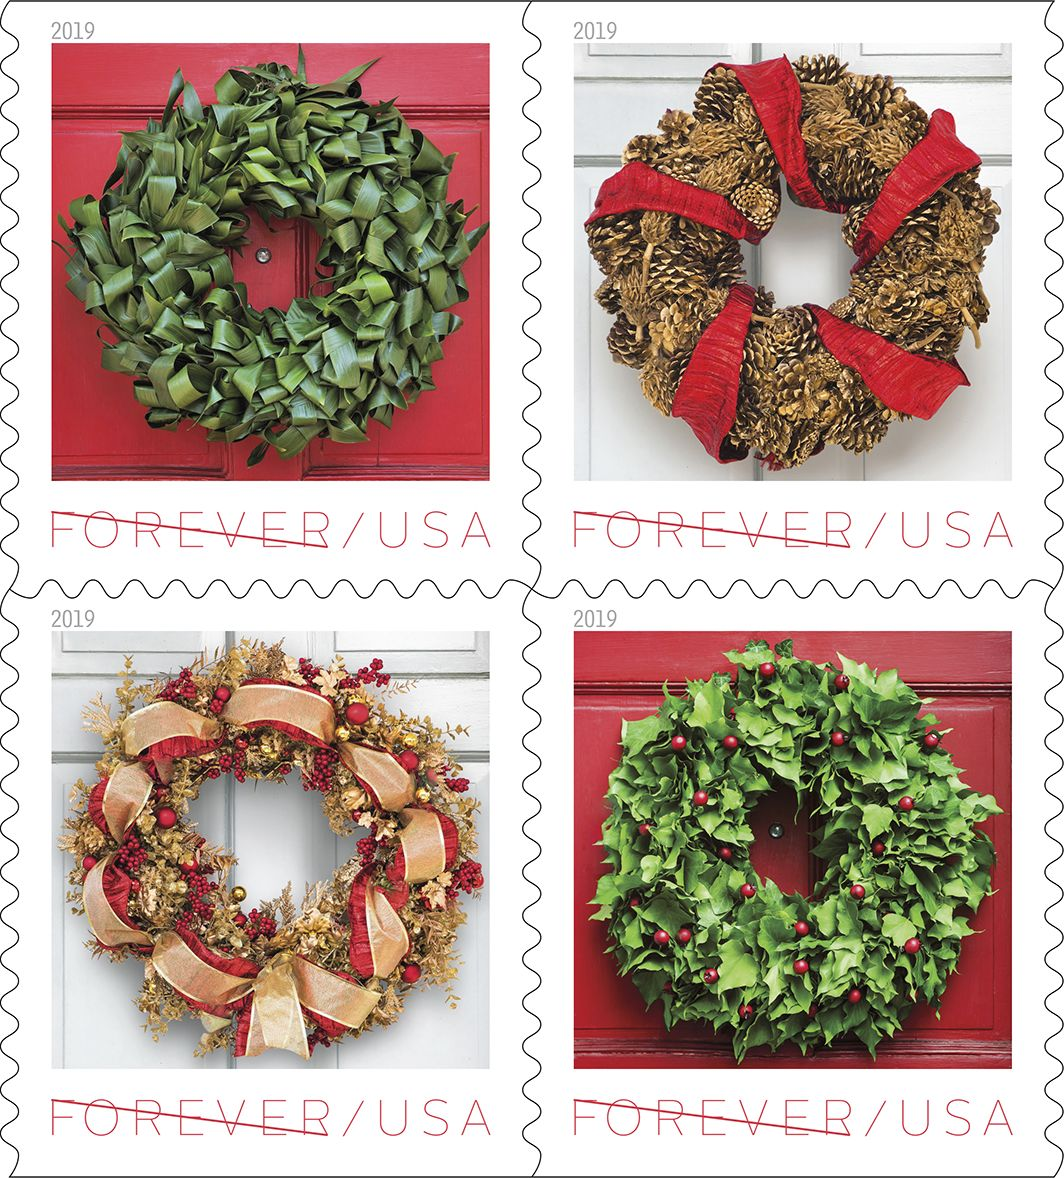 postal service holiday stamps 2019